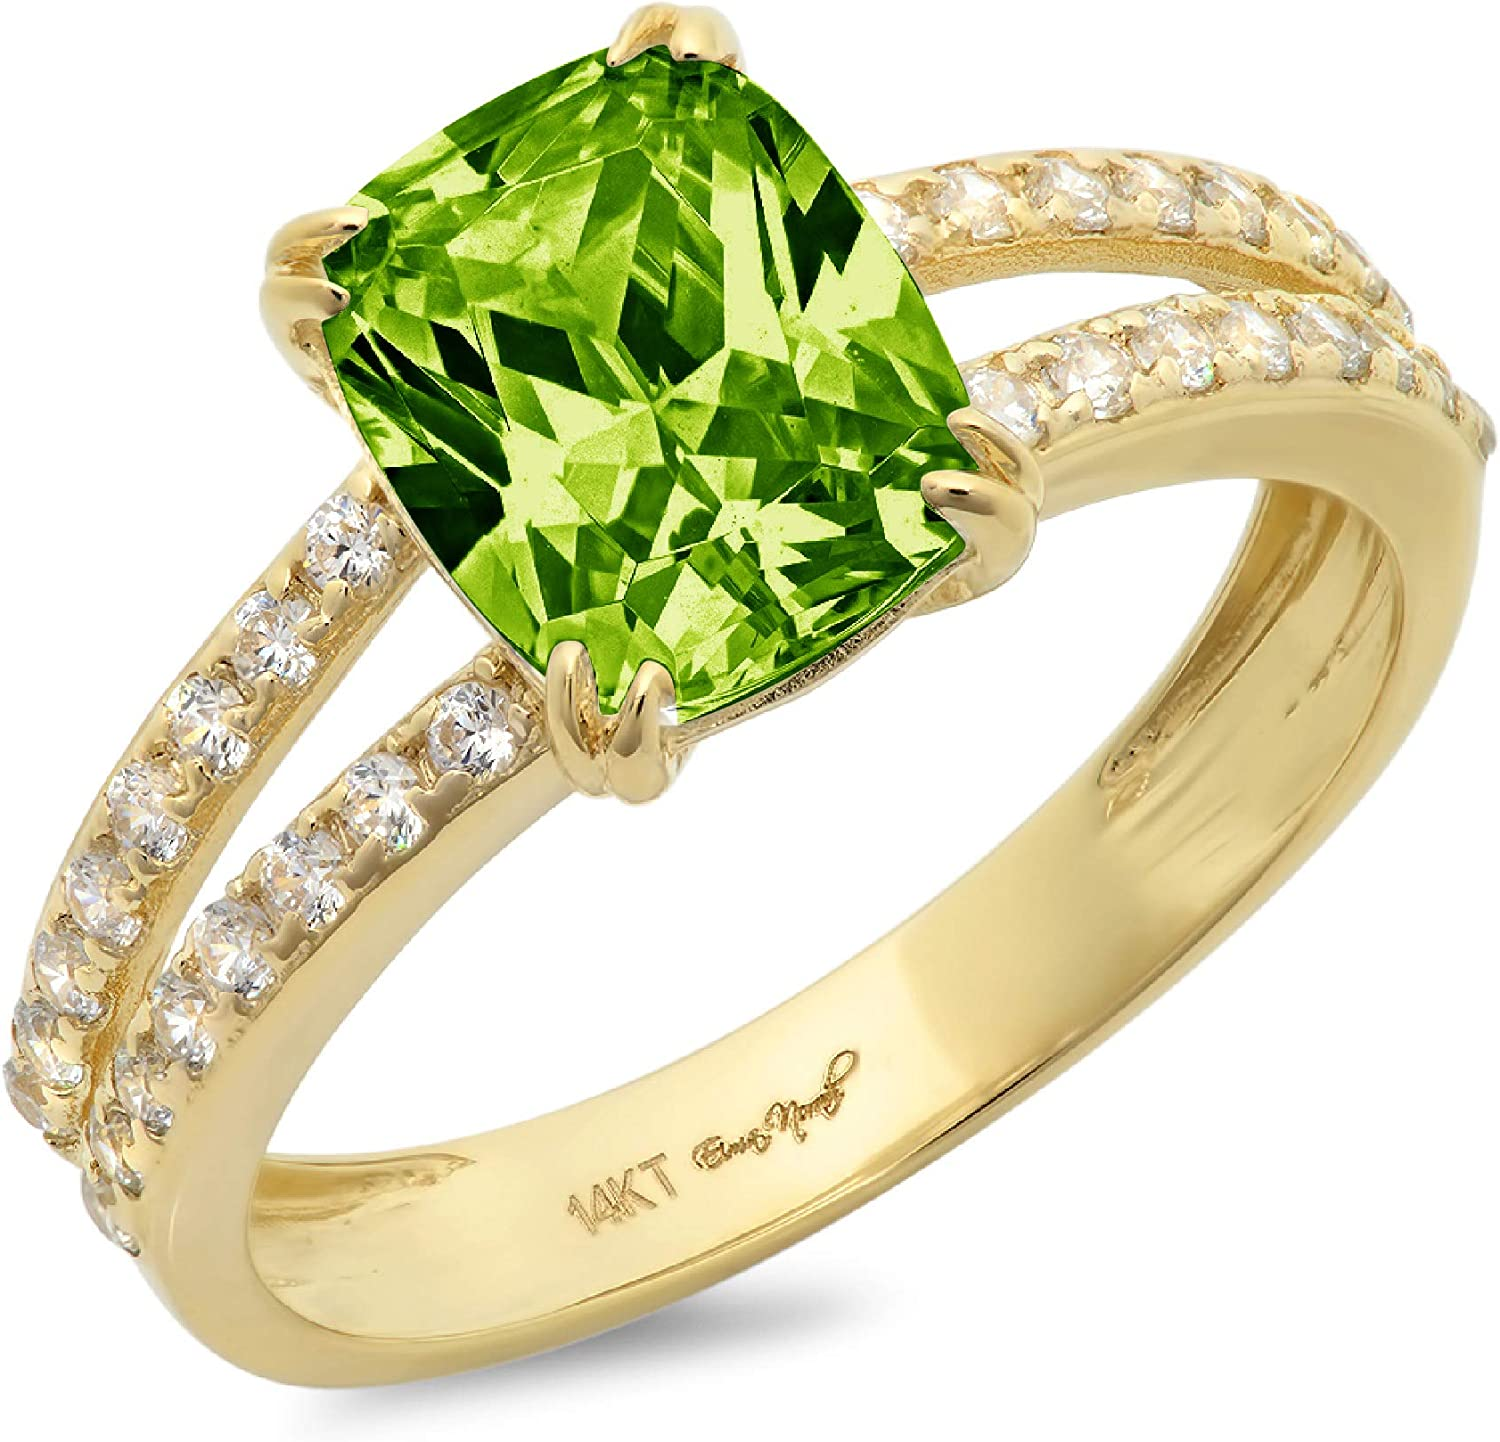 3.50 ct Brilliant Cushion Cut Solitaire with accent Designer Genuine Natural Green Peridot Gemstone Ideal VVS1 Engagement Promise Statement Anniversary Bridal Wedding Ring 14k Yellow Gold